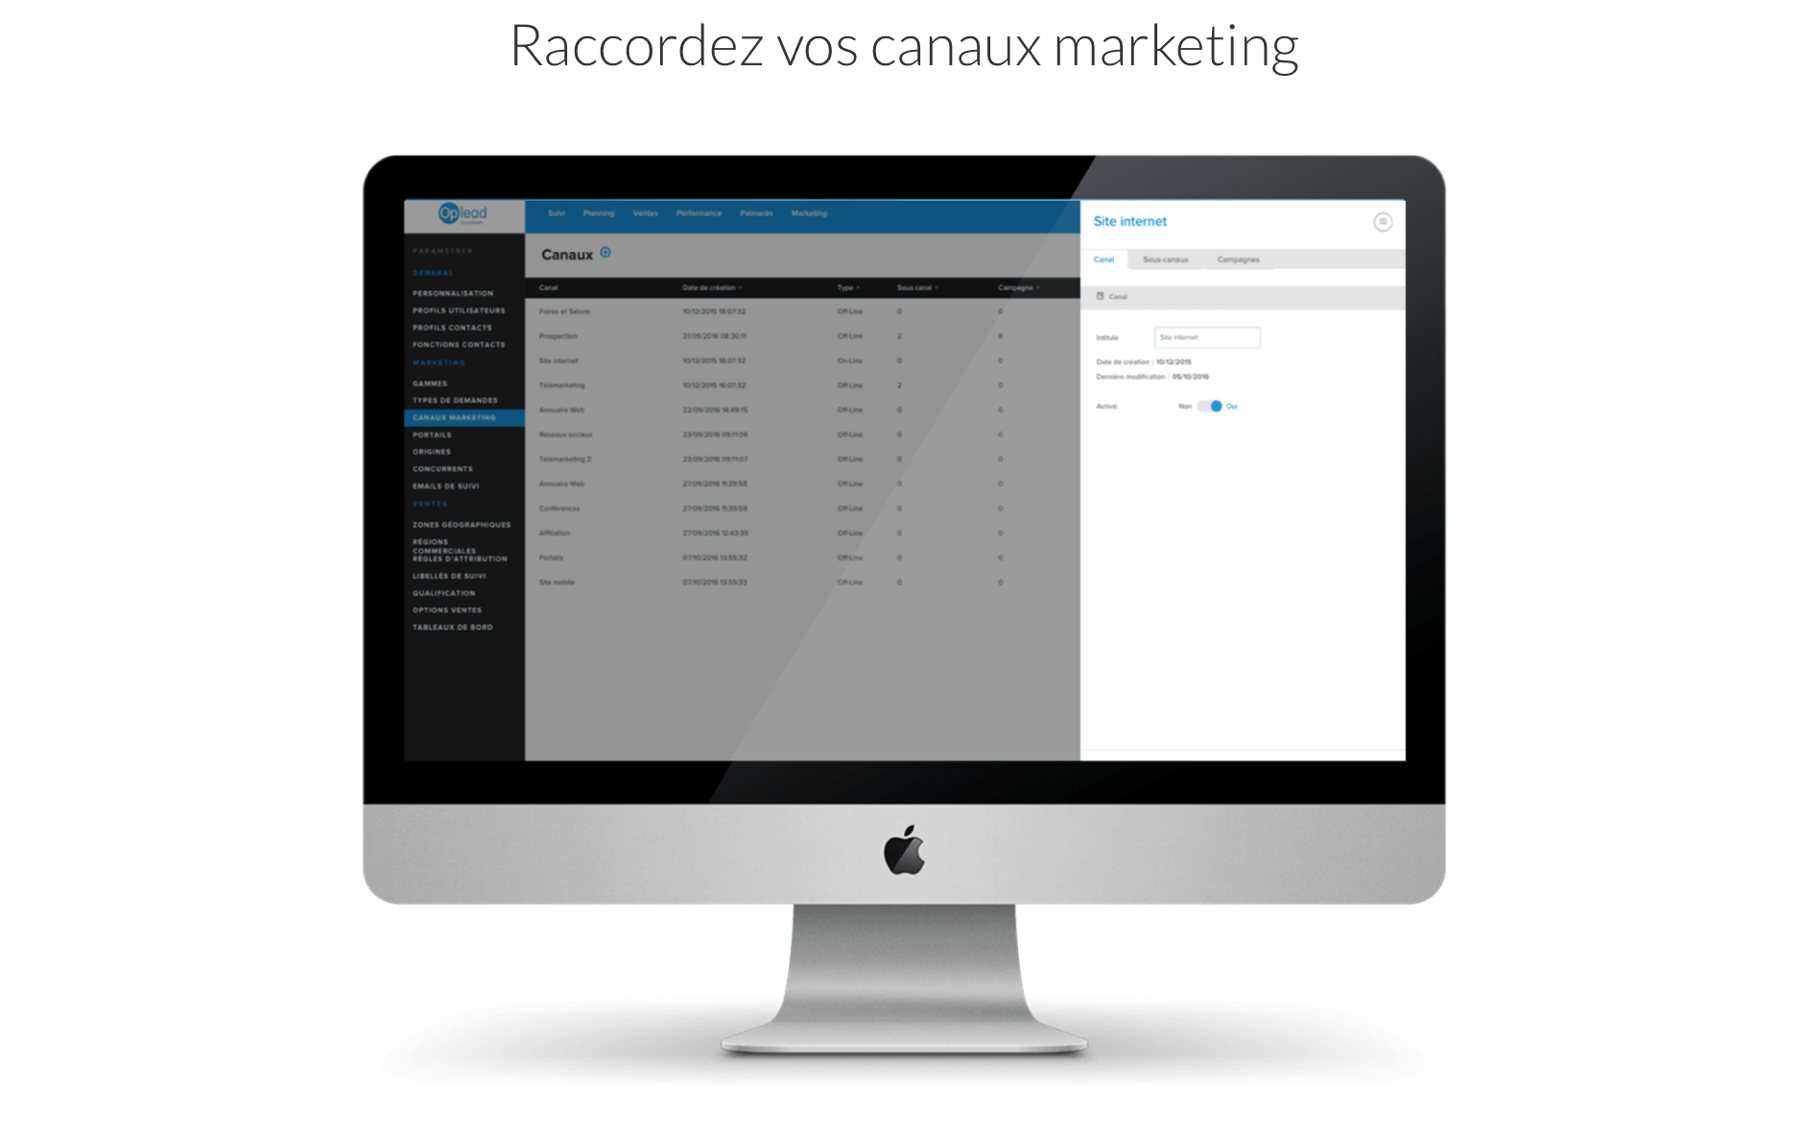 Gestion de canaux marketing